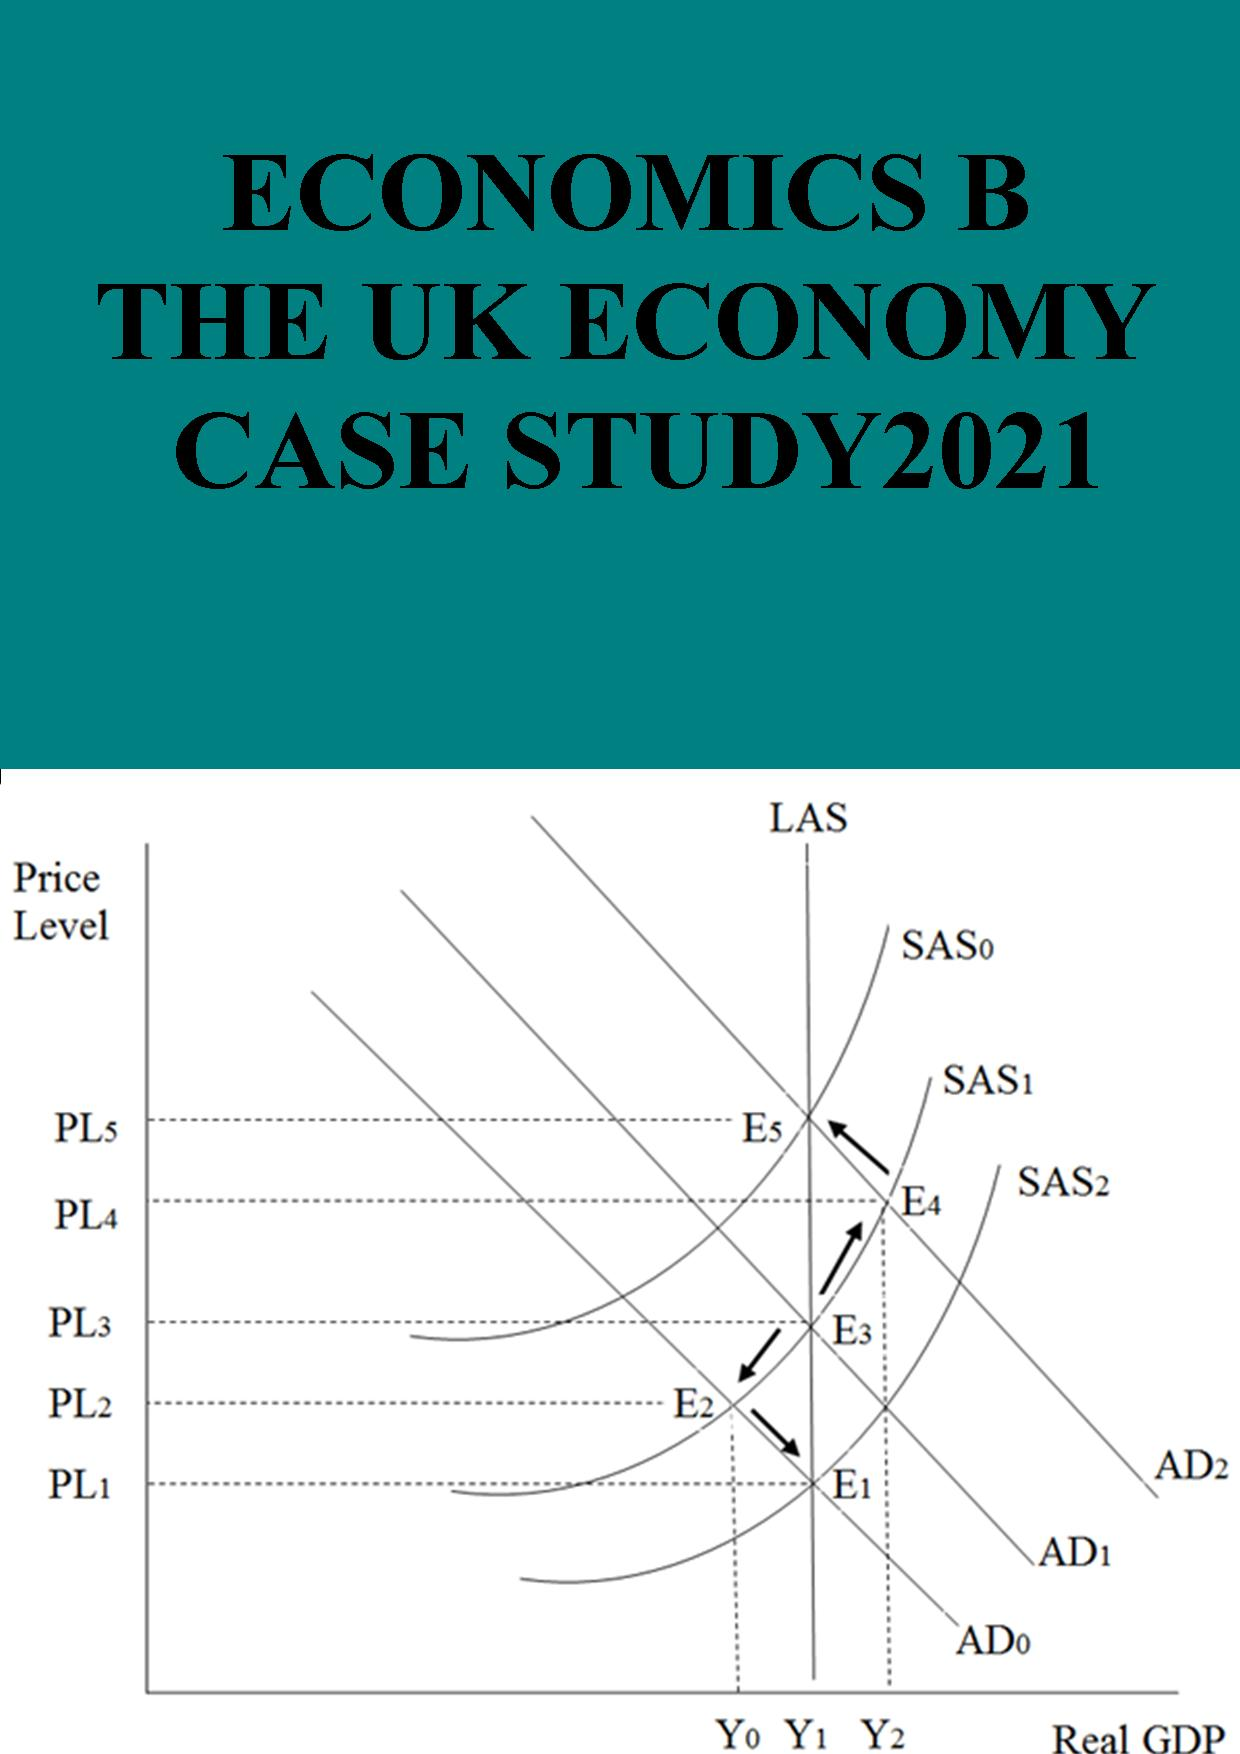 The UK Economy (Case Study 2021)